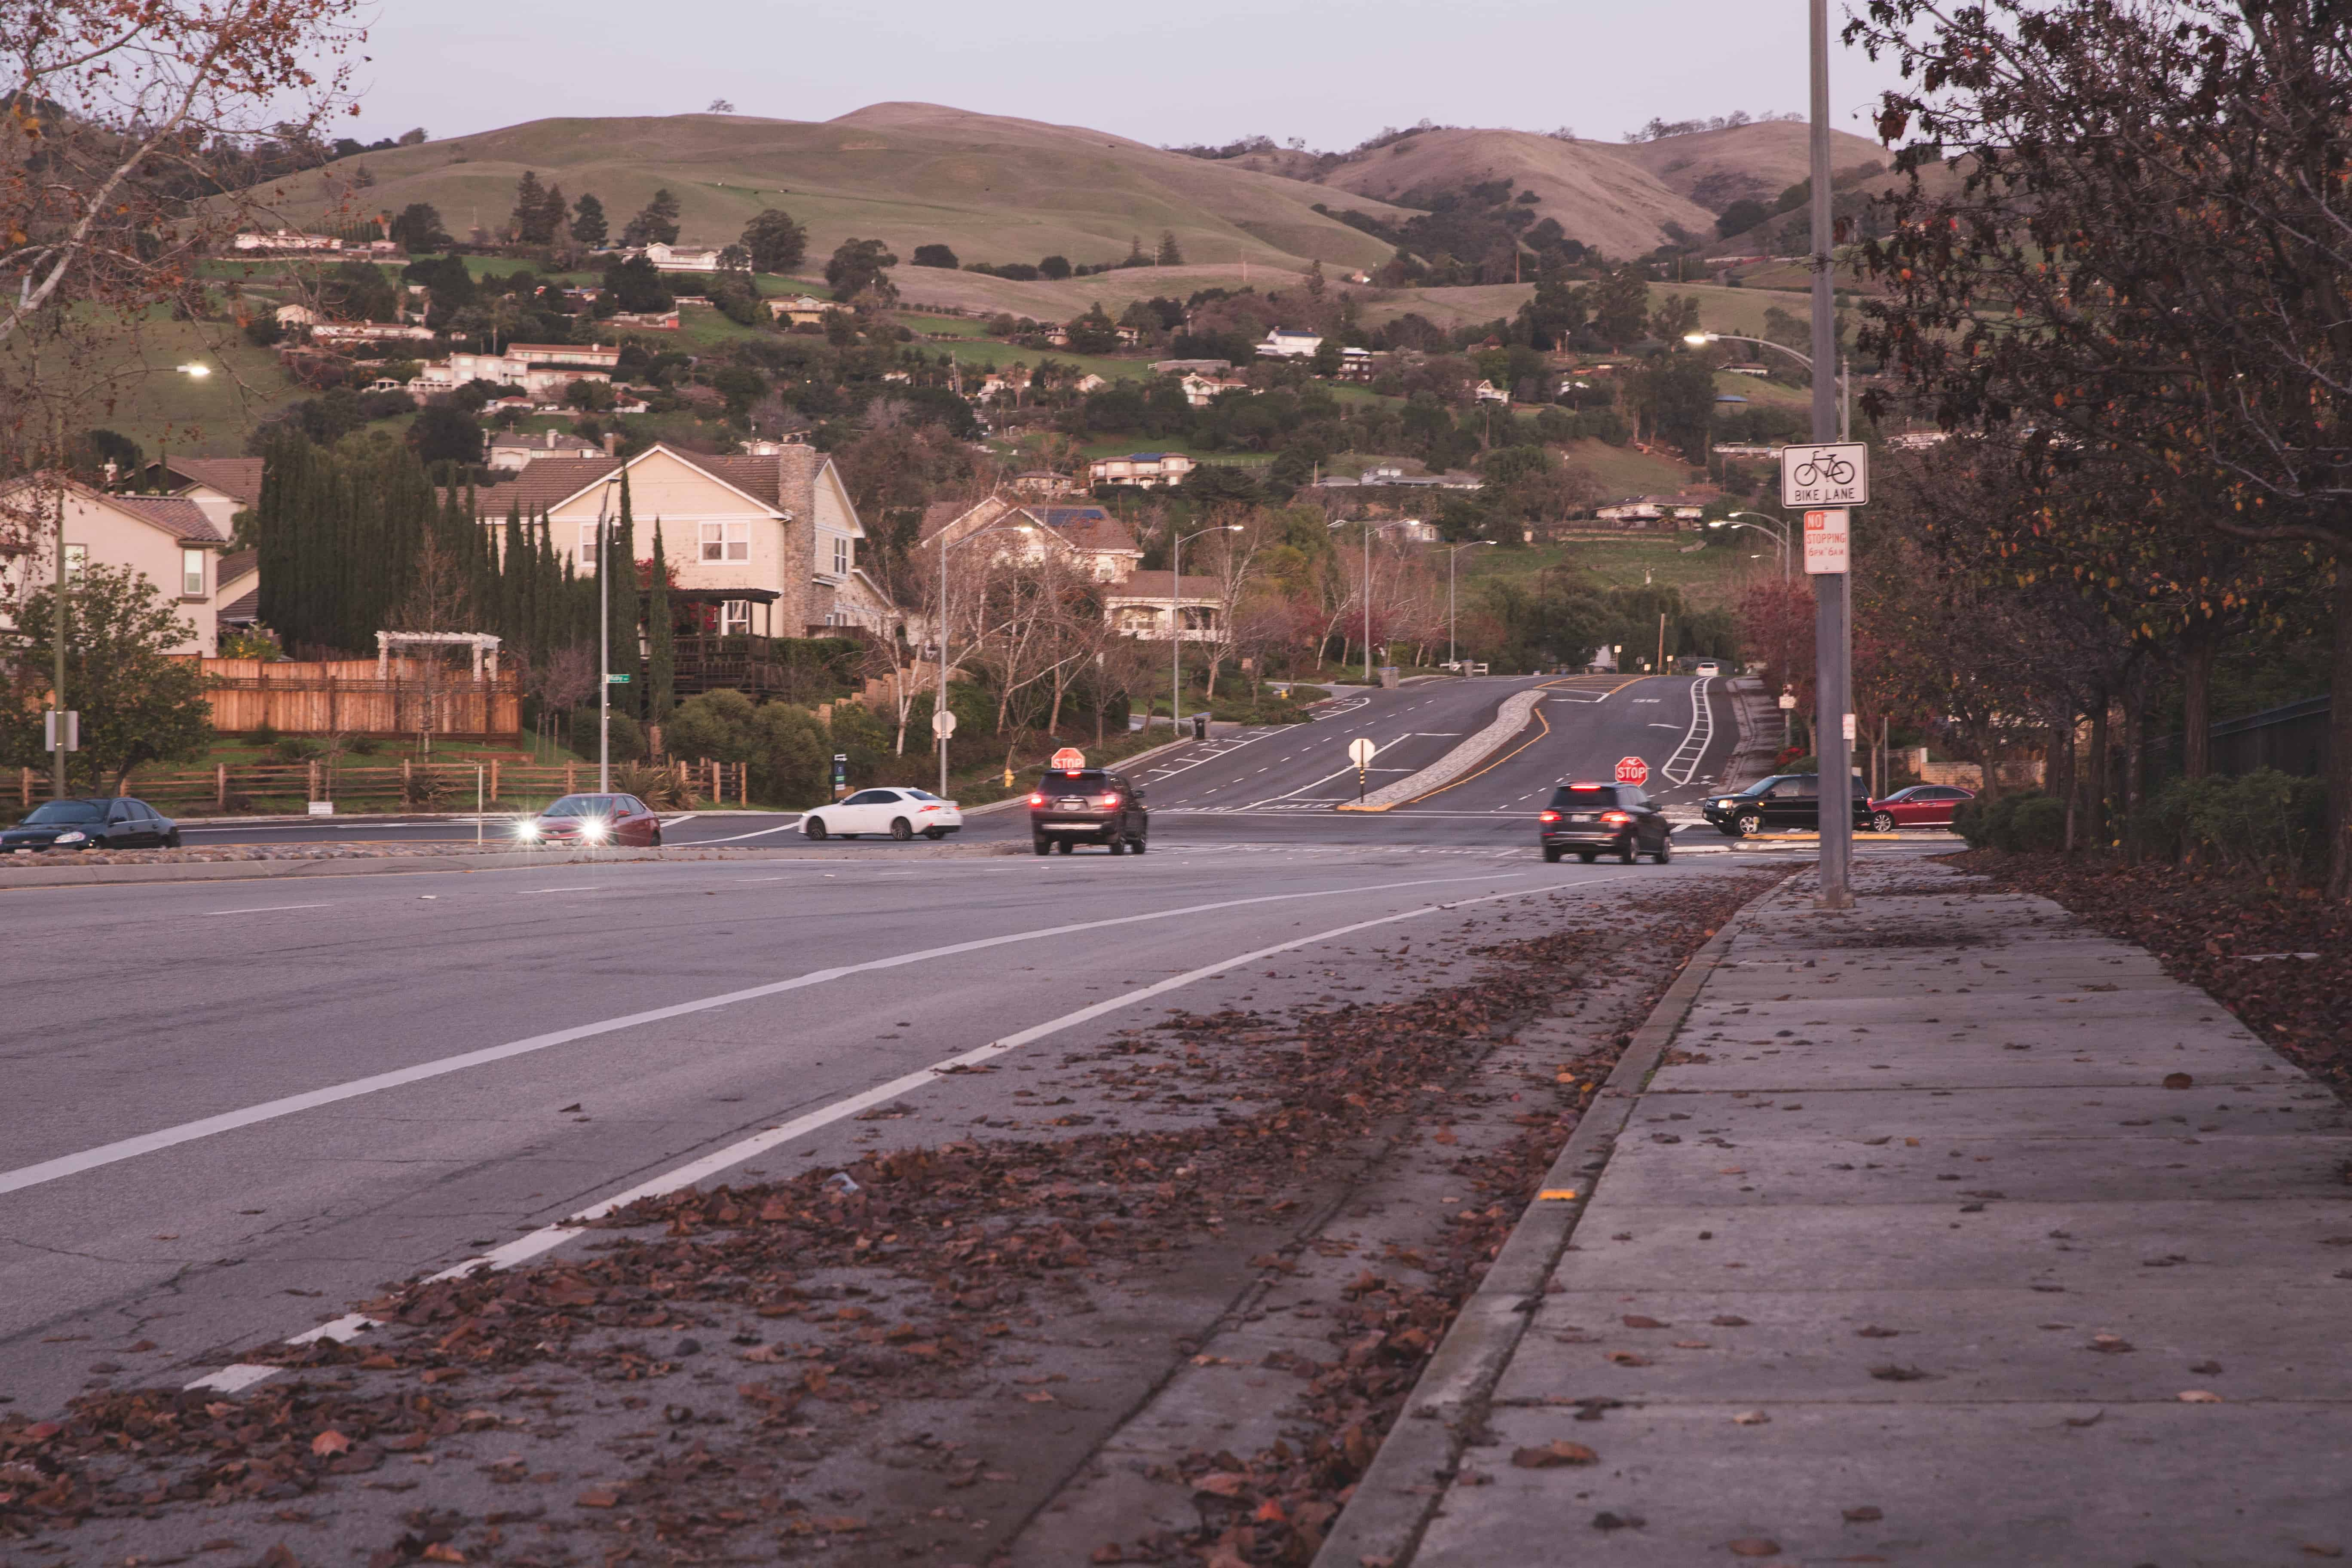 The hills in San Jose, California - the urban-ness of the Bay Area is one of the reasons I'm ready to leave